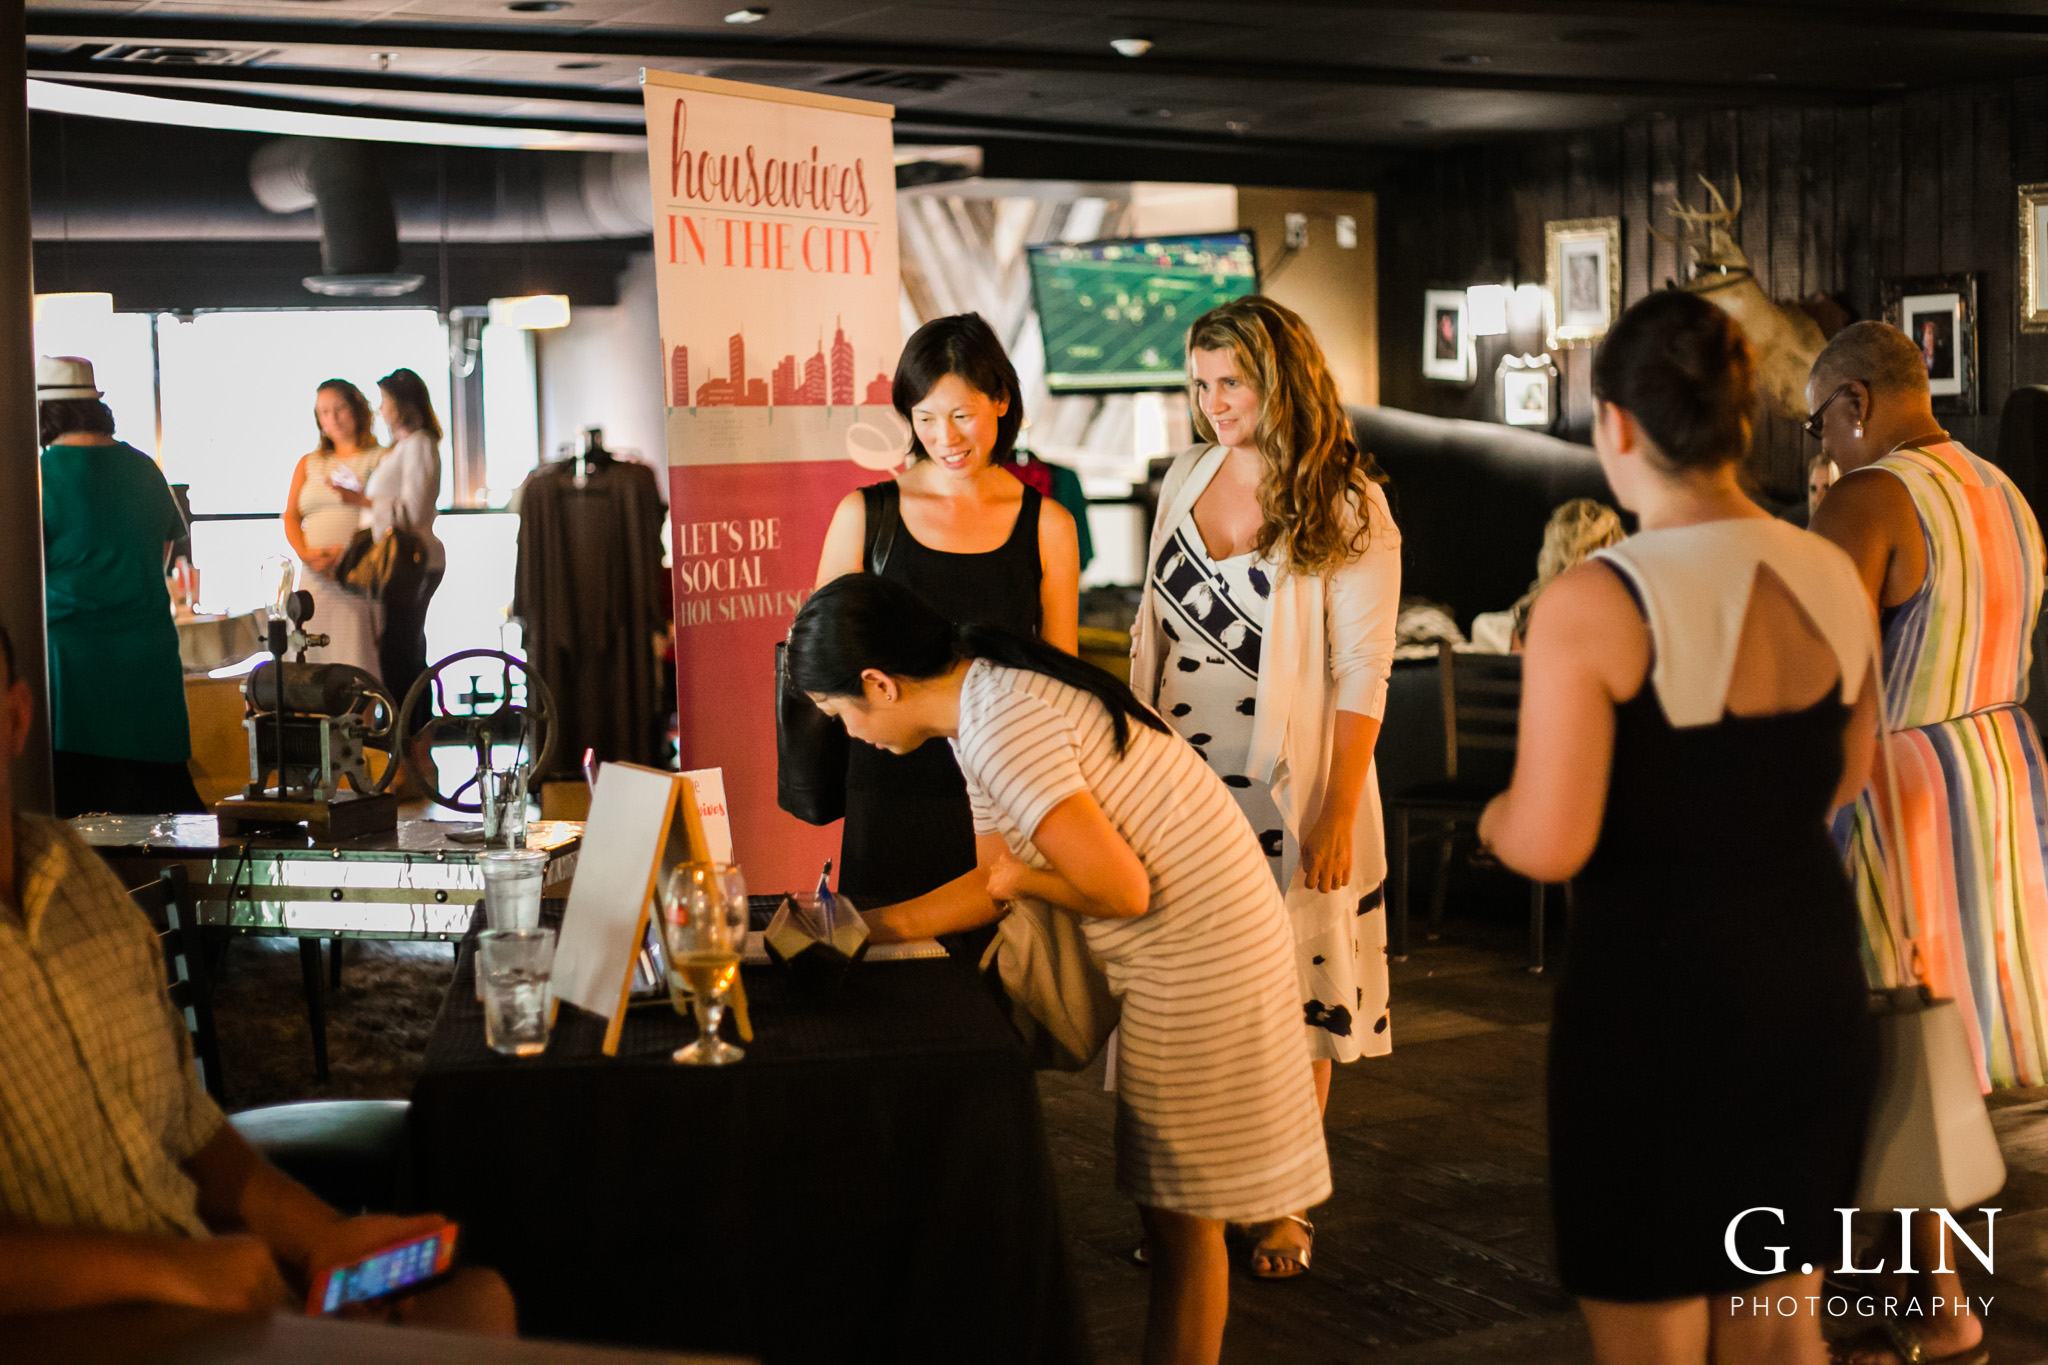 Raleigh Event Photographer | G. Lin Photography | Raleigh Housewives in the City